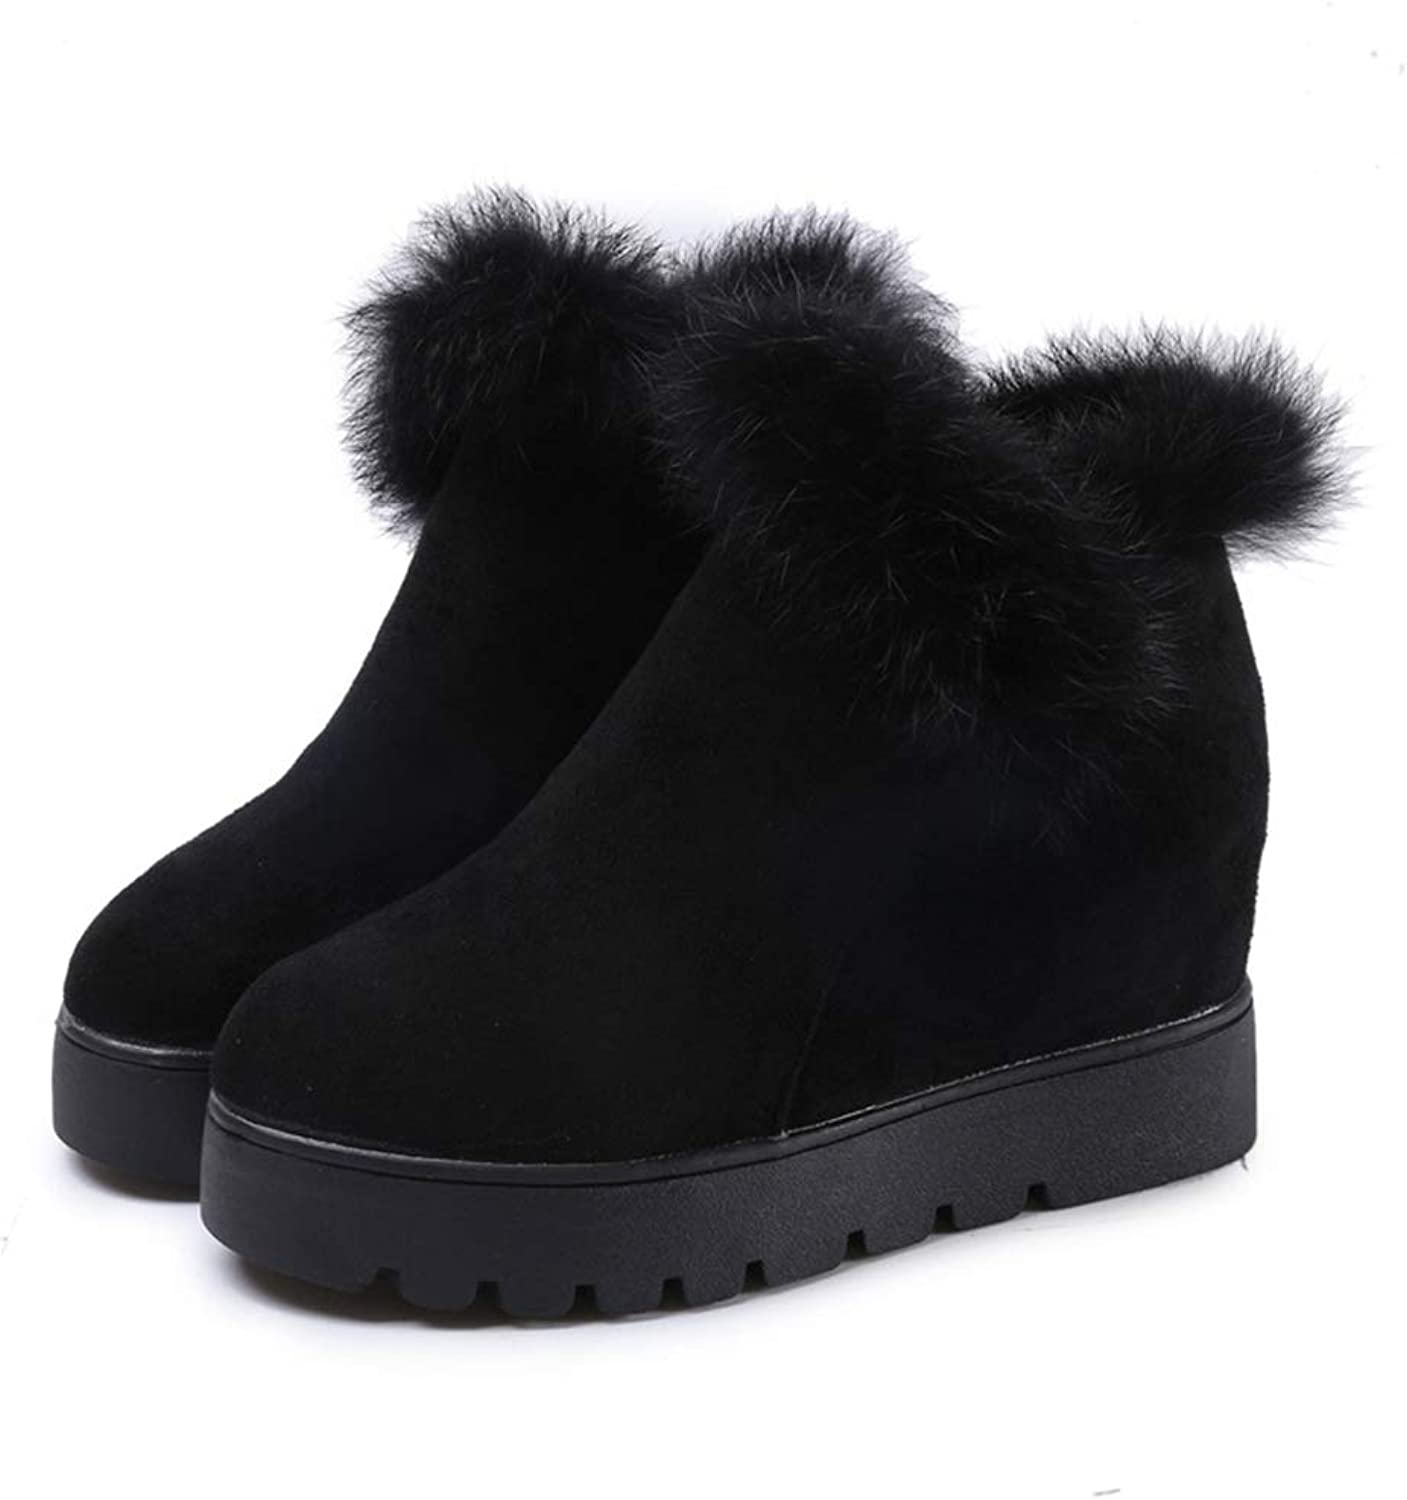 Super frist Women's Fur one Snow Boots, Thicker in The Winter, Plus Cashmere Boots